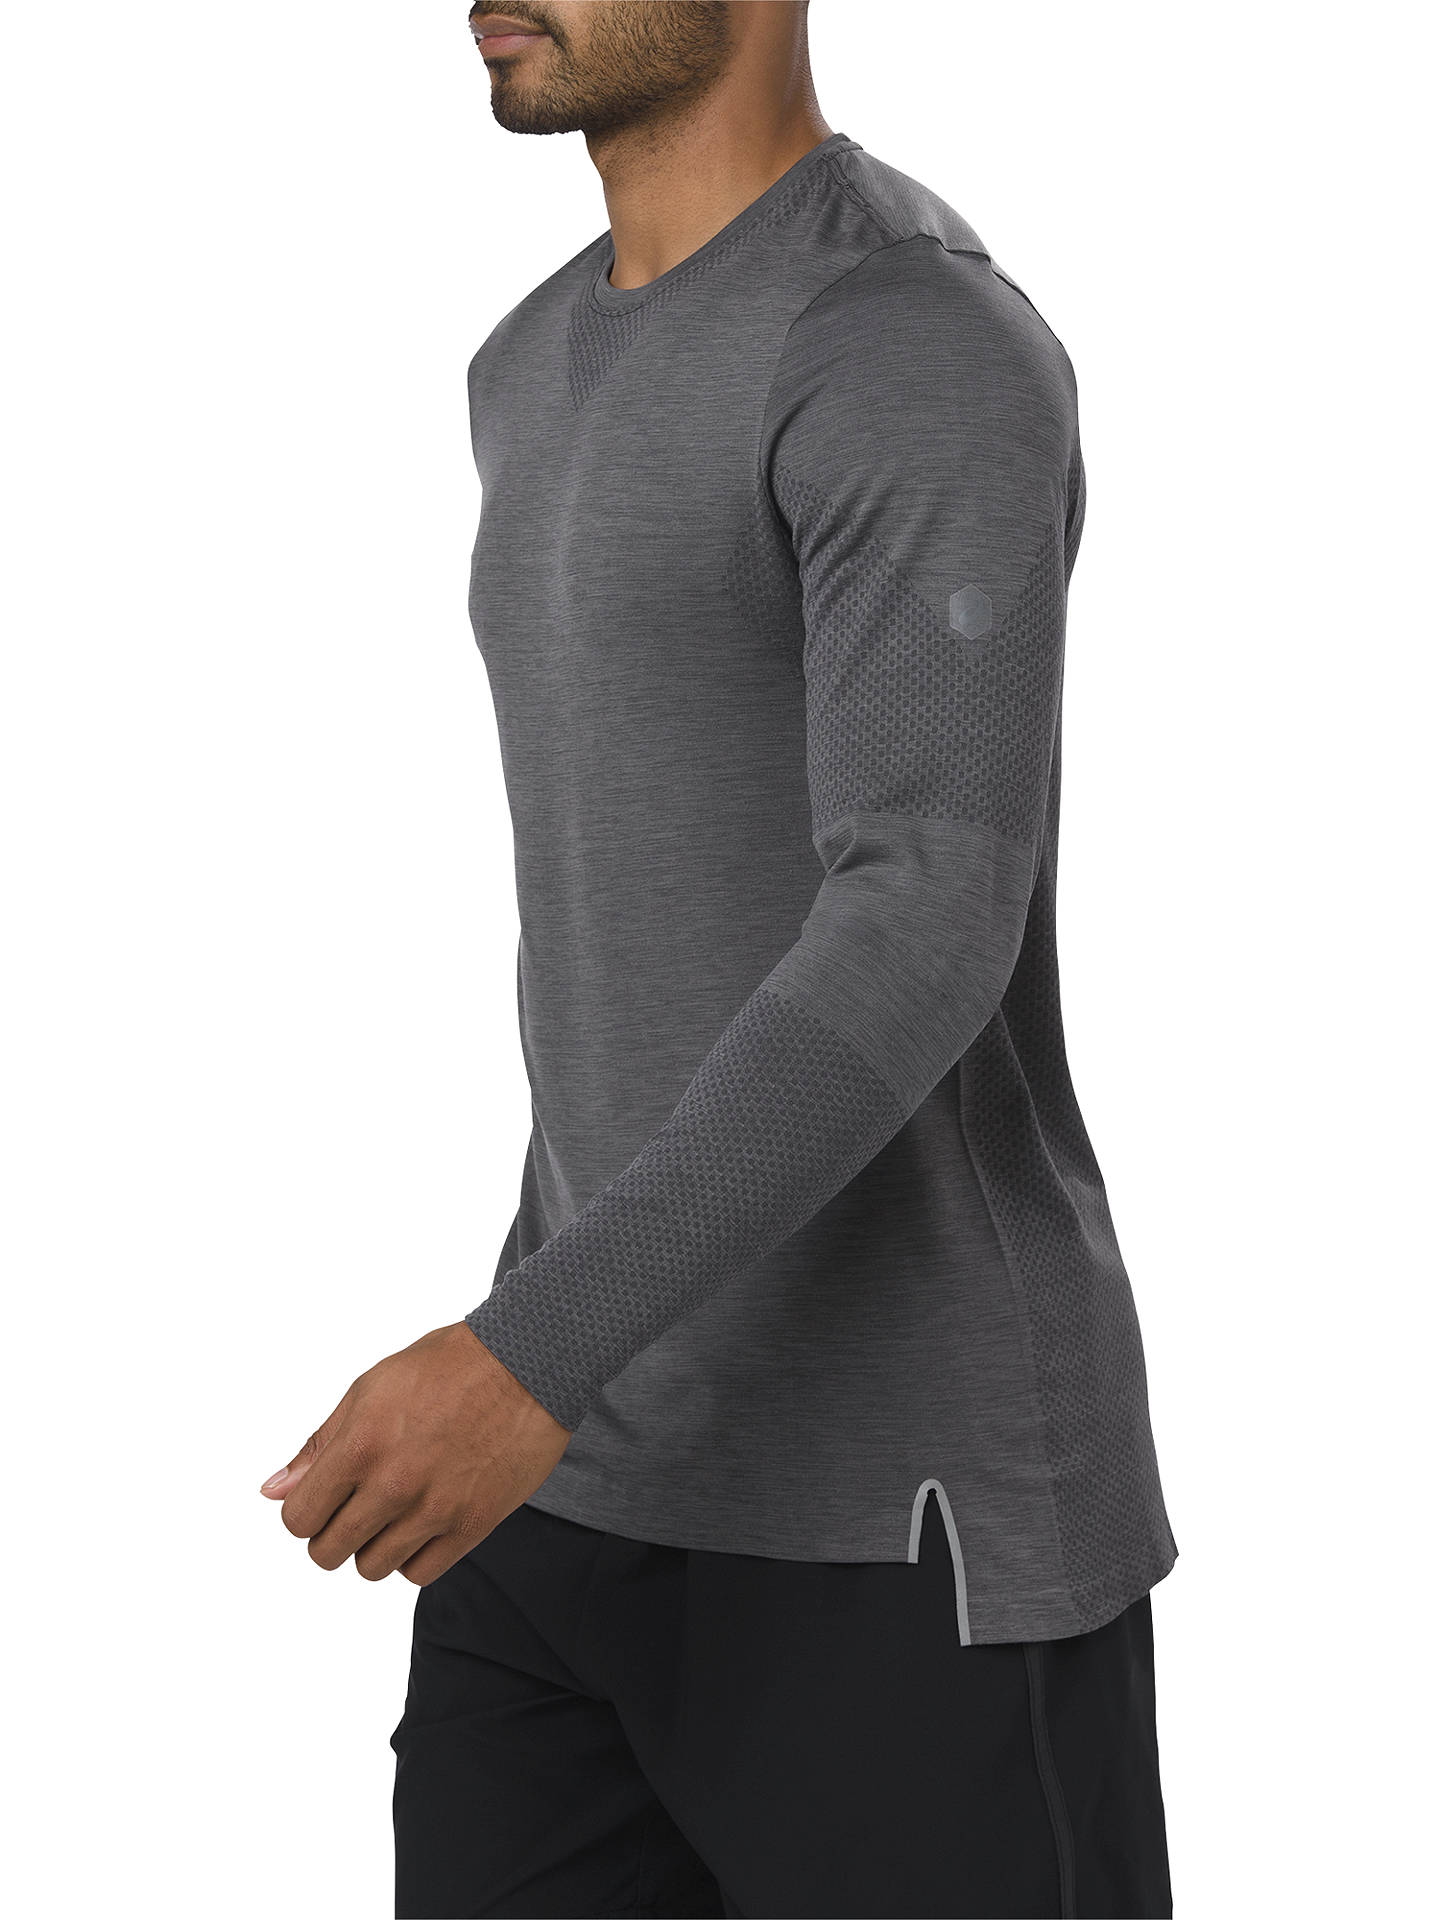 BuyASICS Seamless Long Sleeve Running Top, Dark Grey Heather, S Online at johnlewis.com